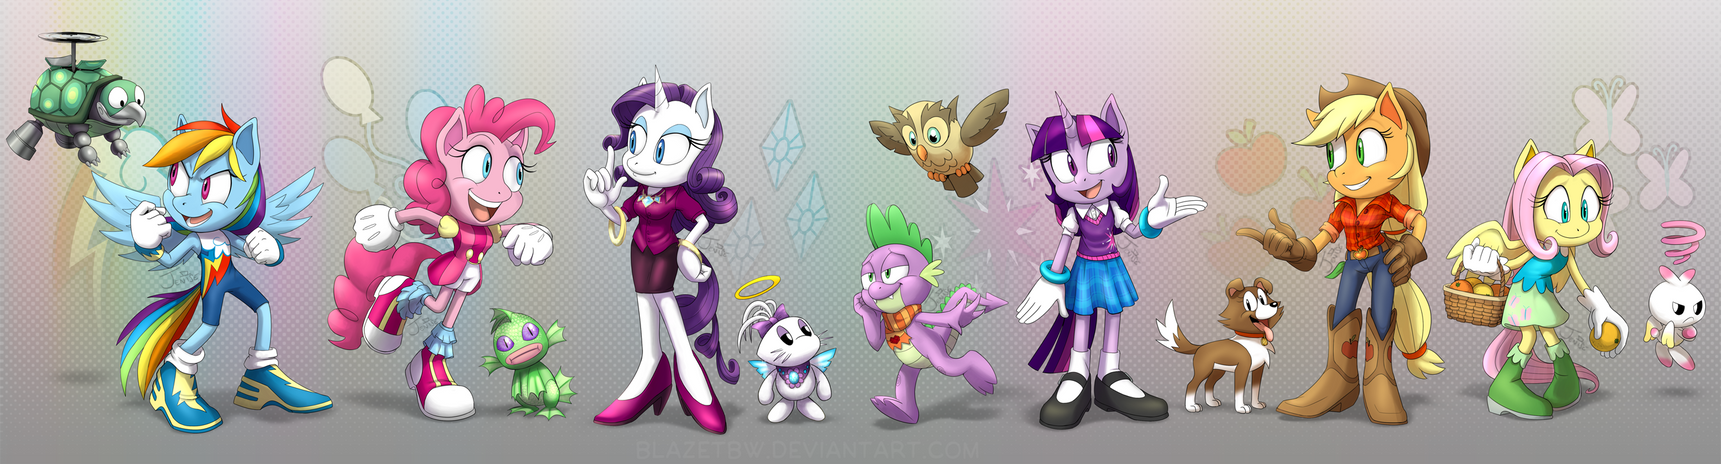 Sonic Style Ponies - Main Six and Pets